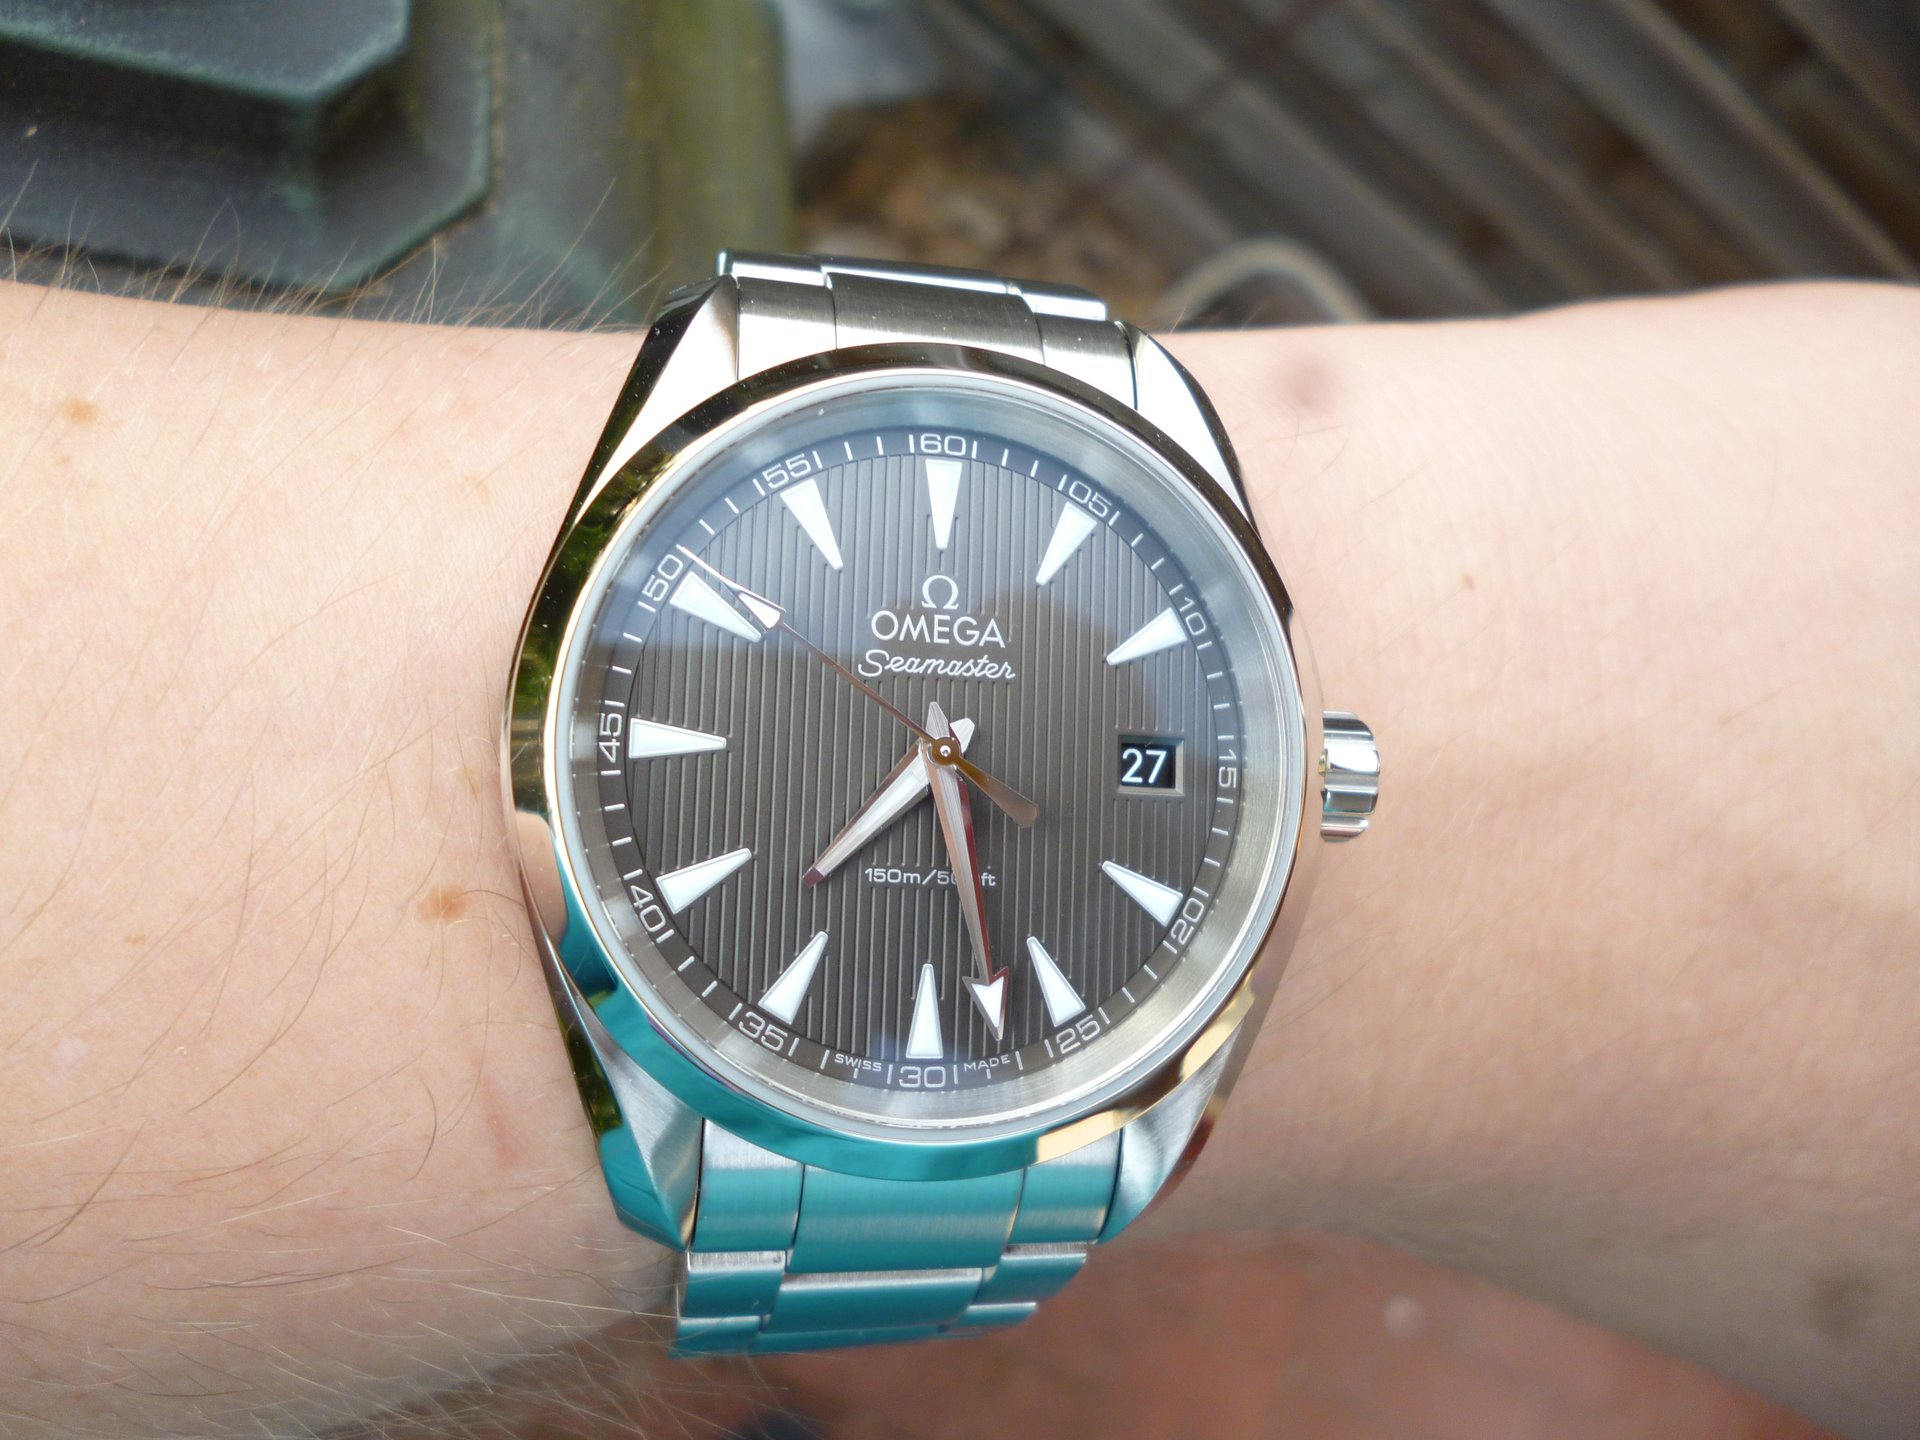 Re: Need to select ONE watch out of these 3 options - Omega Seamaster AT,  Tag Carerra or Grand Seiko